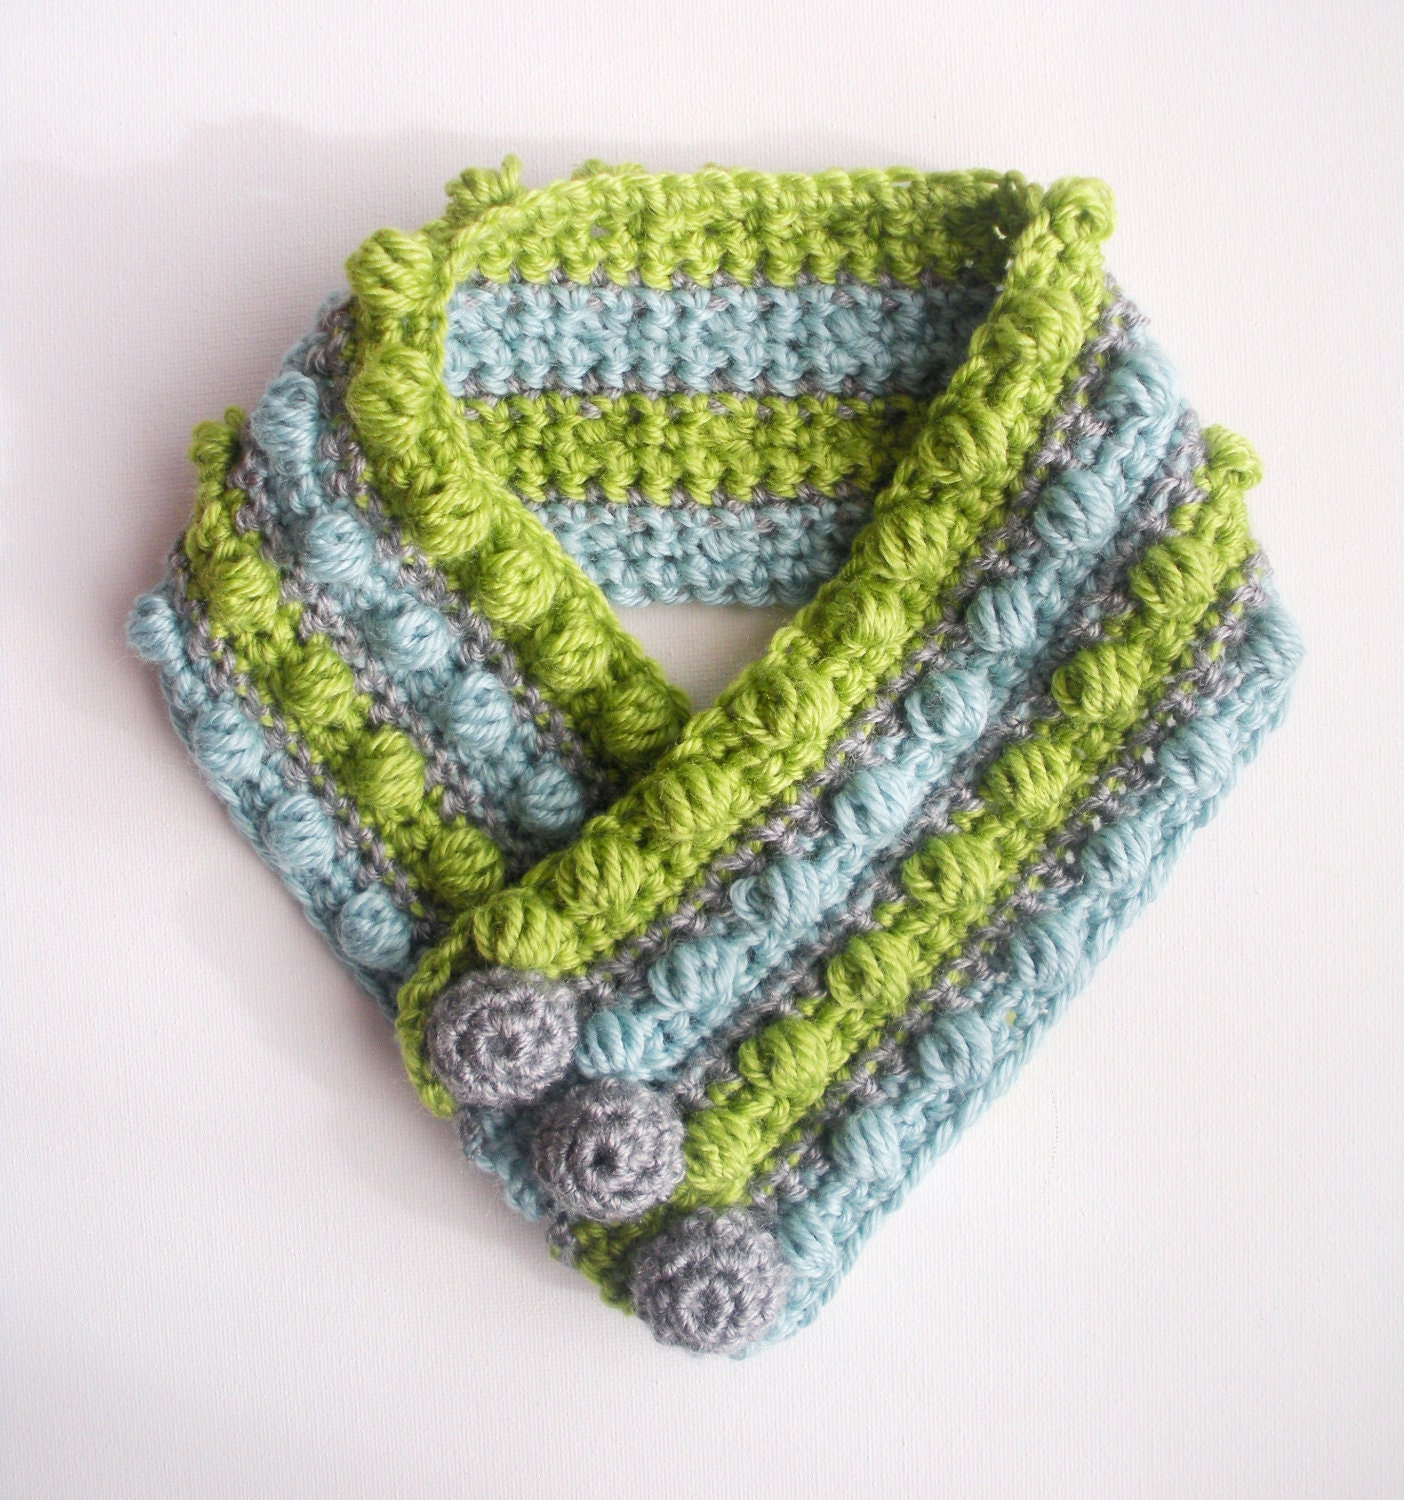 Crochet Patterns Neck Scarves : Crochet Scarf Gumdrops Wool Bamboo Unisex Striped Neck Crochet ...